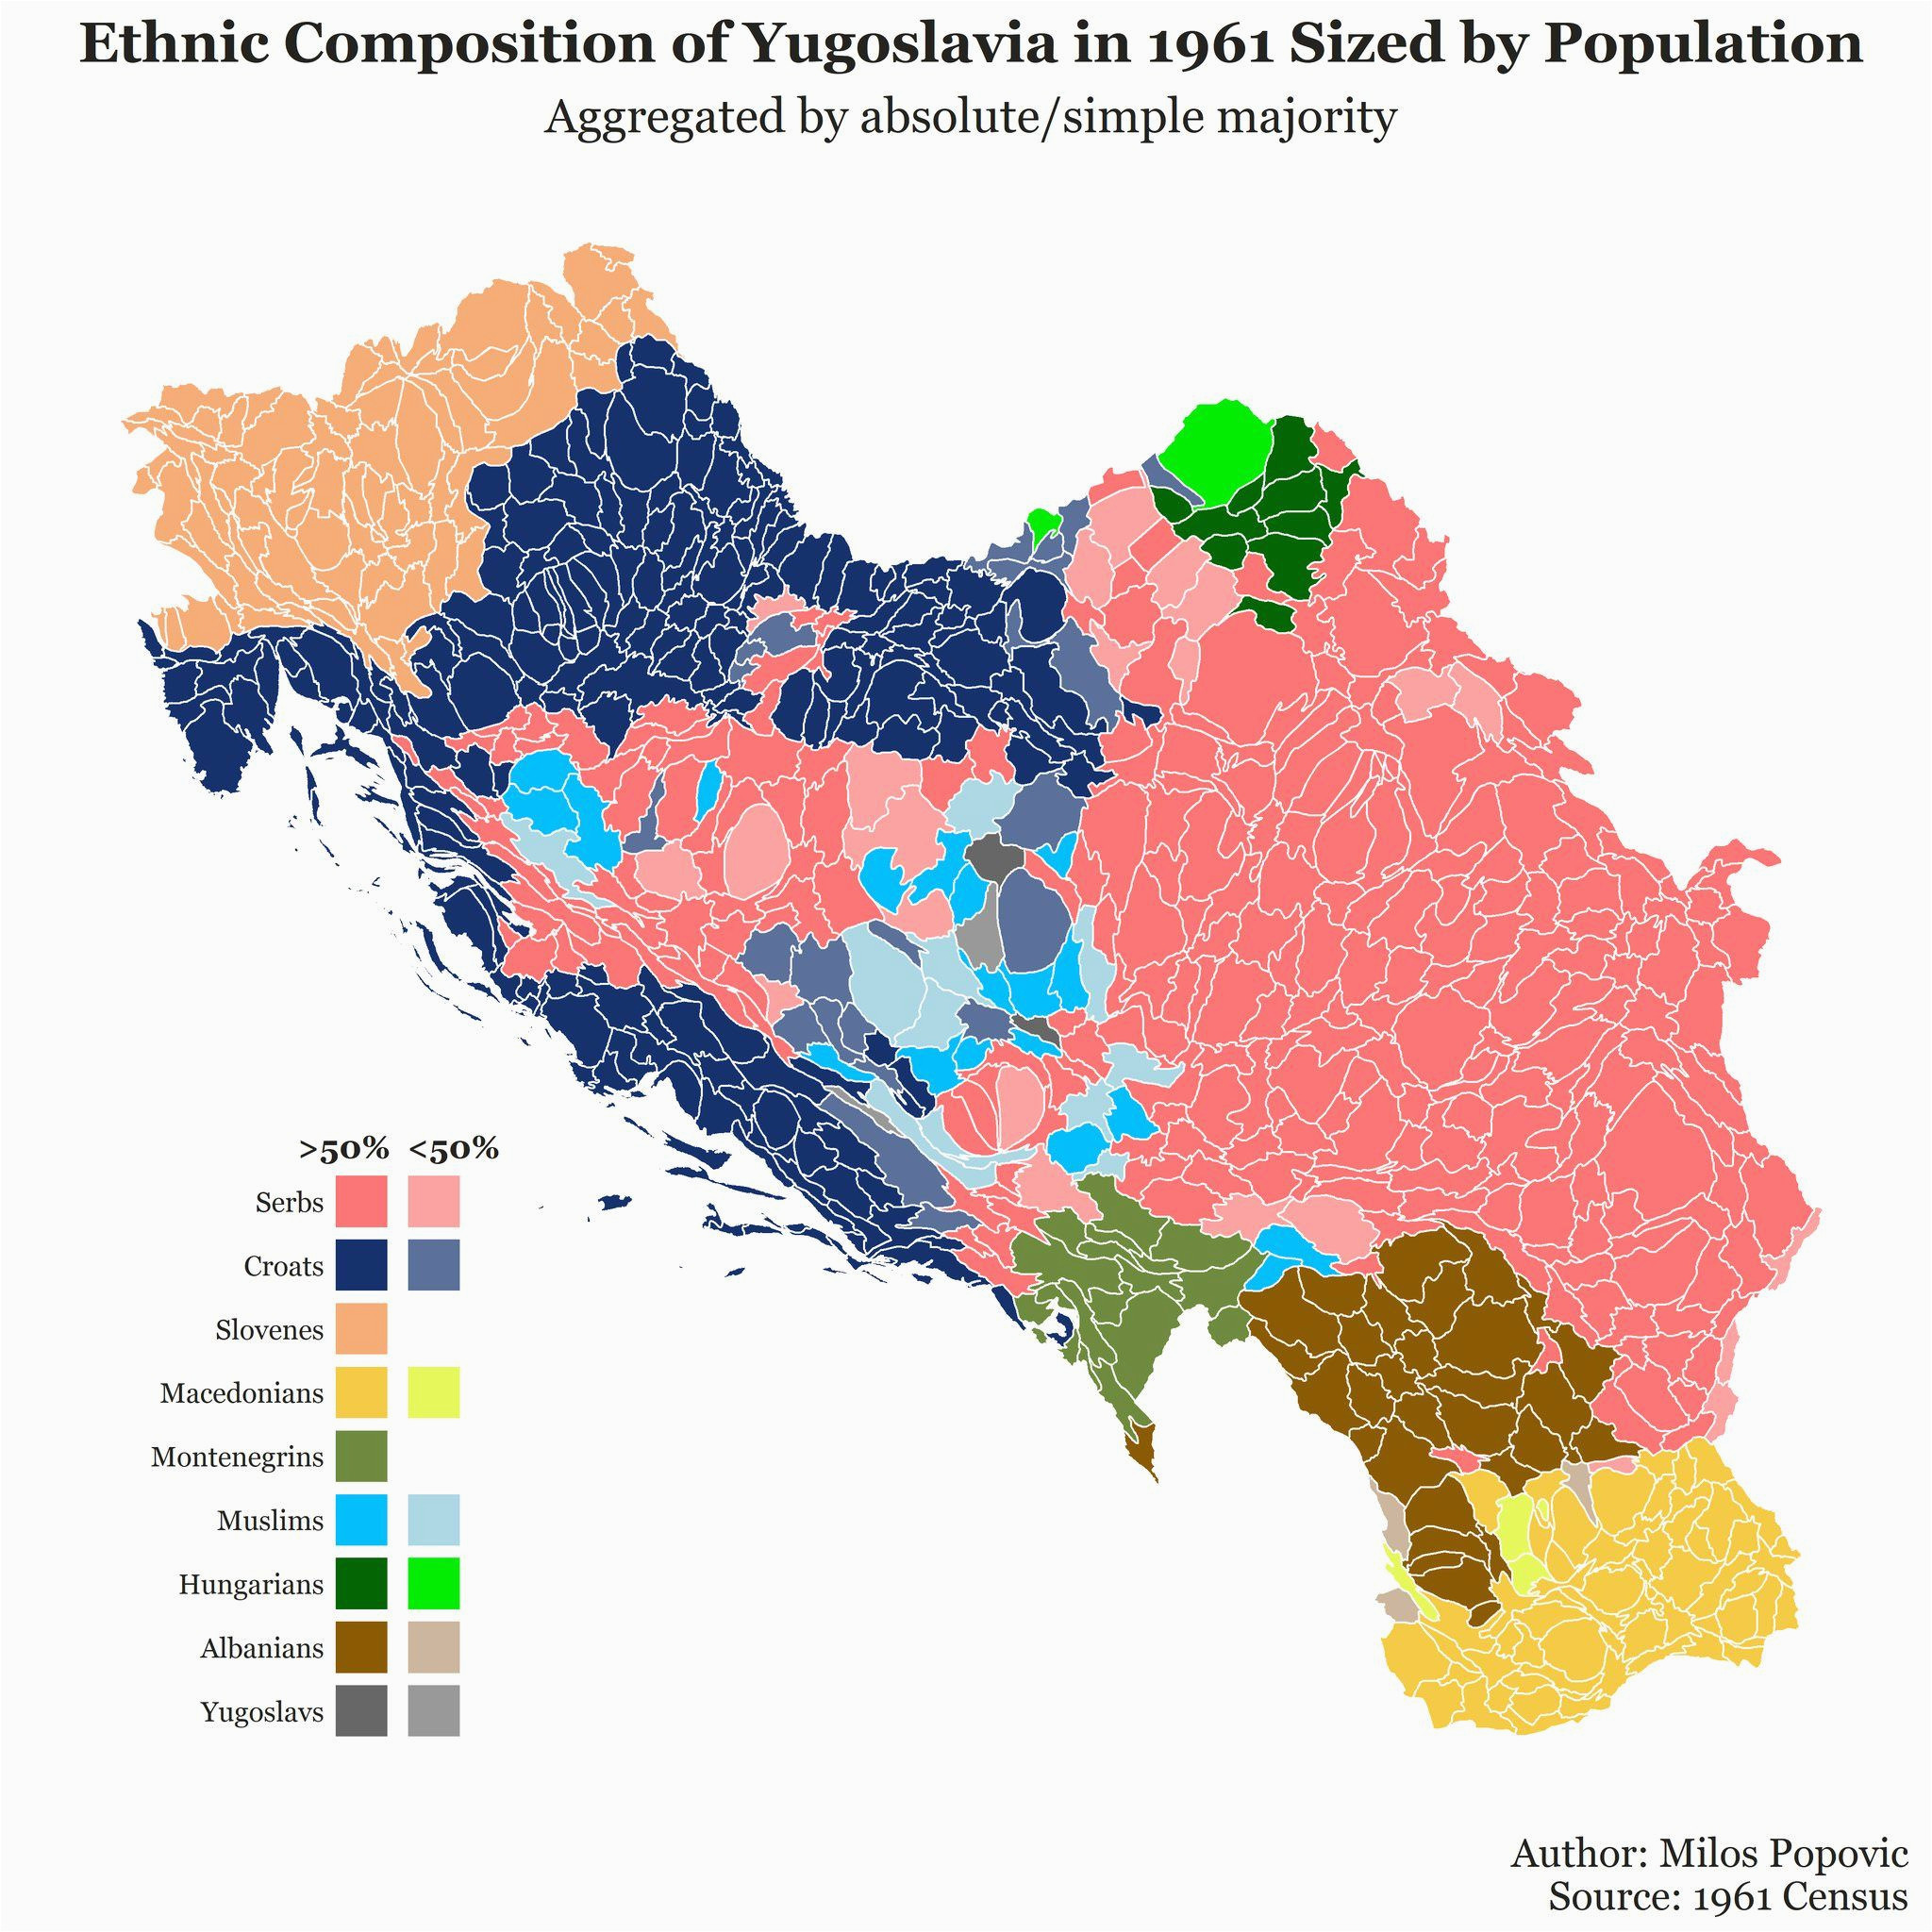 ethnic composition of yugoslavia in 1961 sized by population